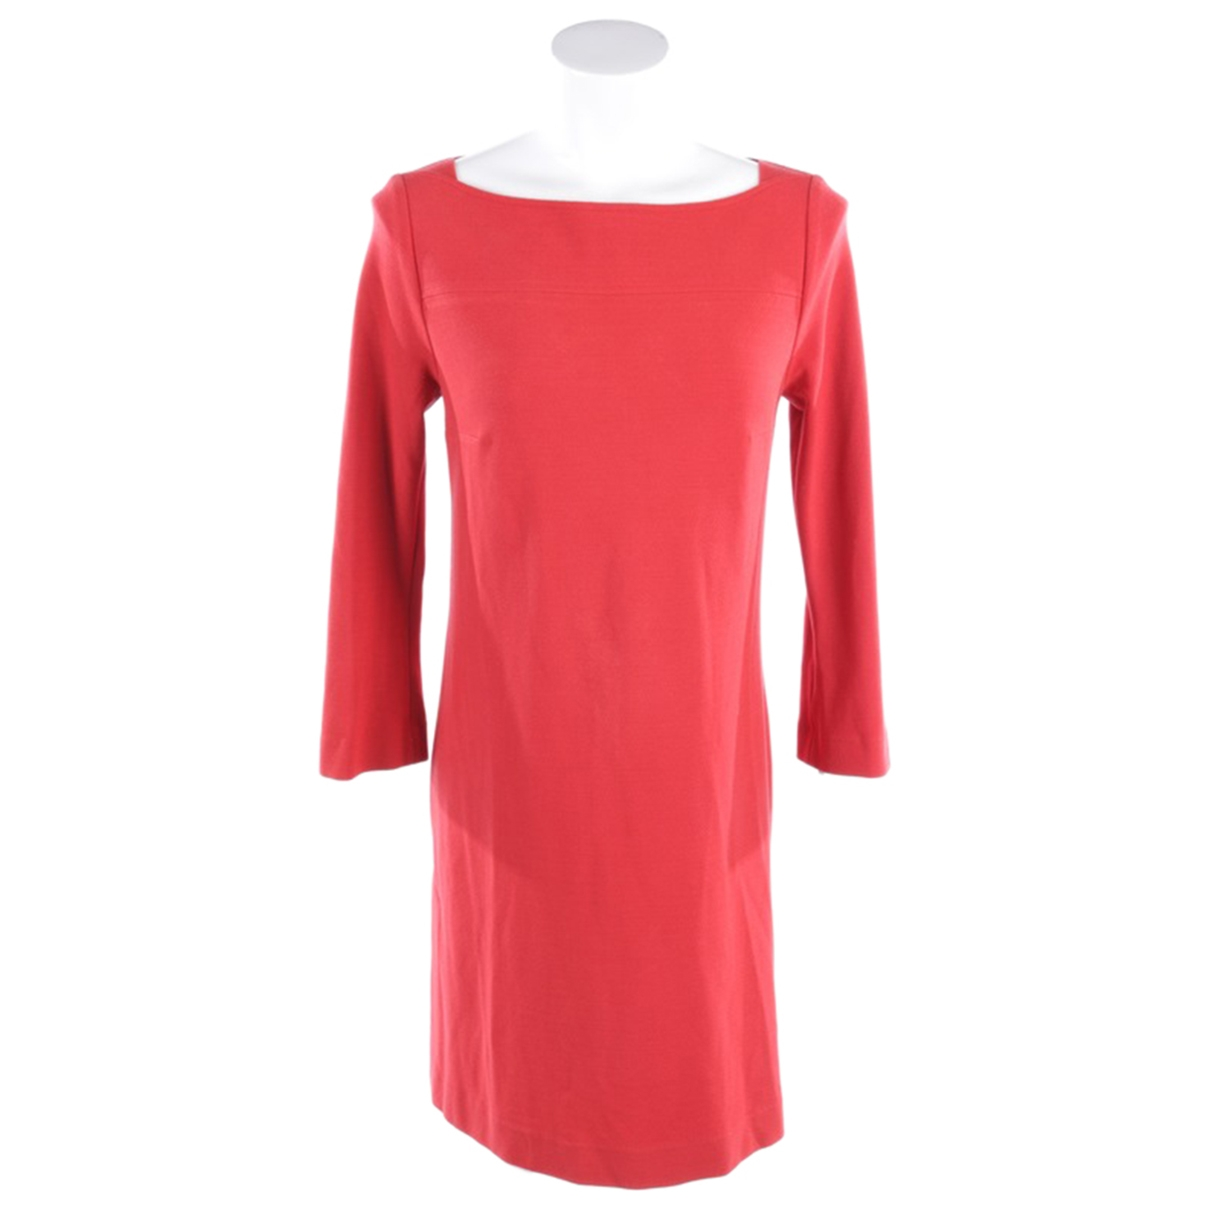 Marc Cain N Red dress for Women 38 FR